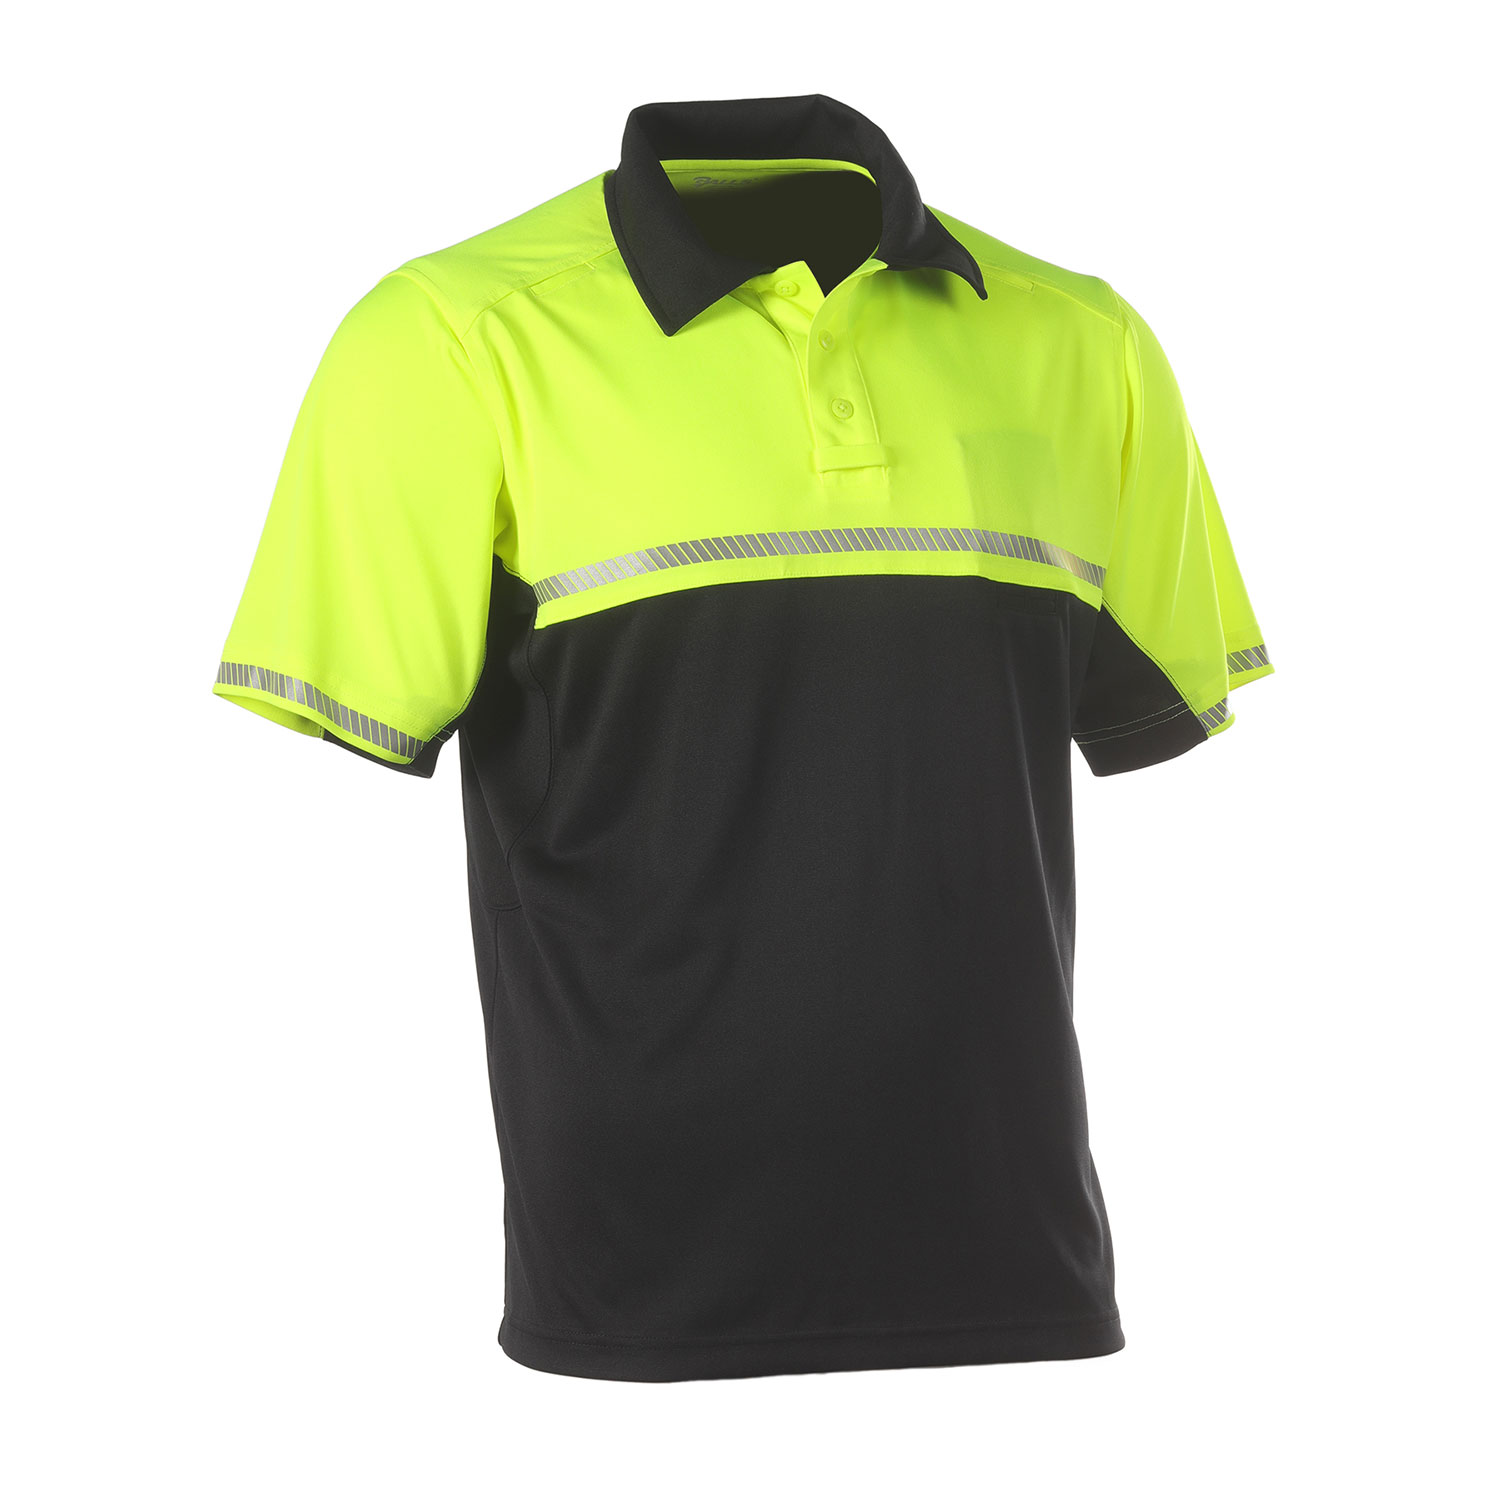 Lawpro Short Sleeve Bike Patrol Polo